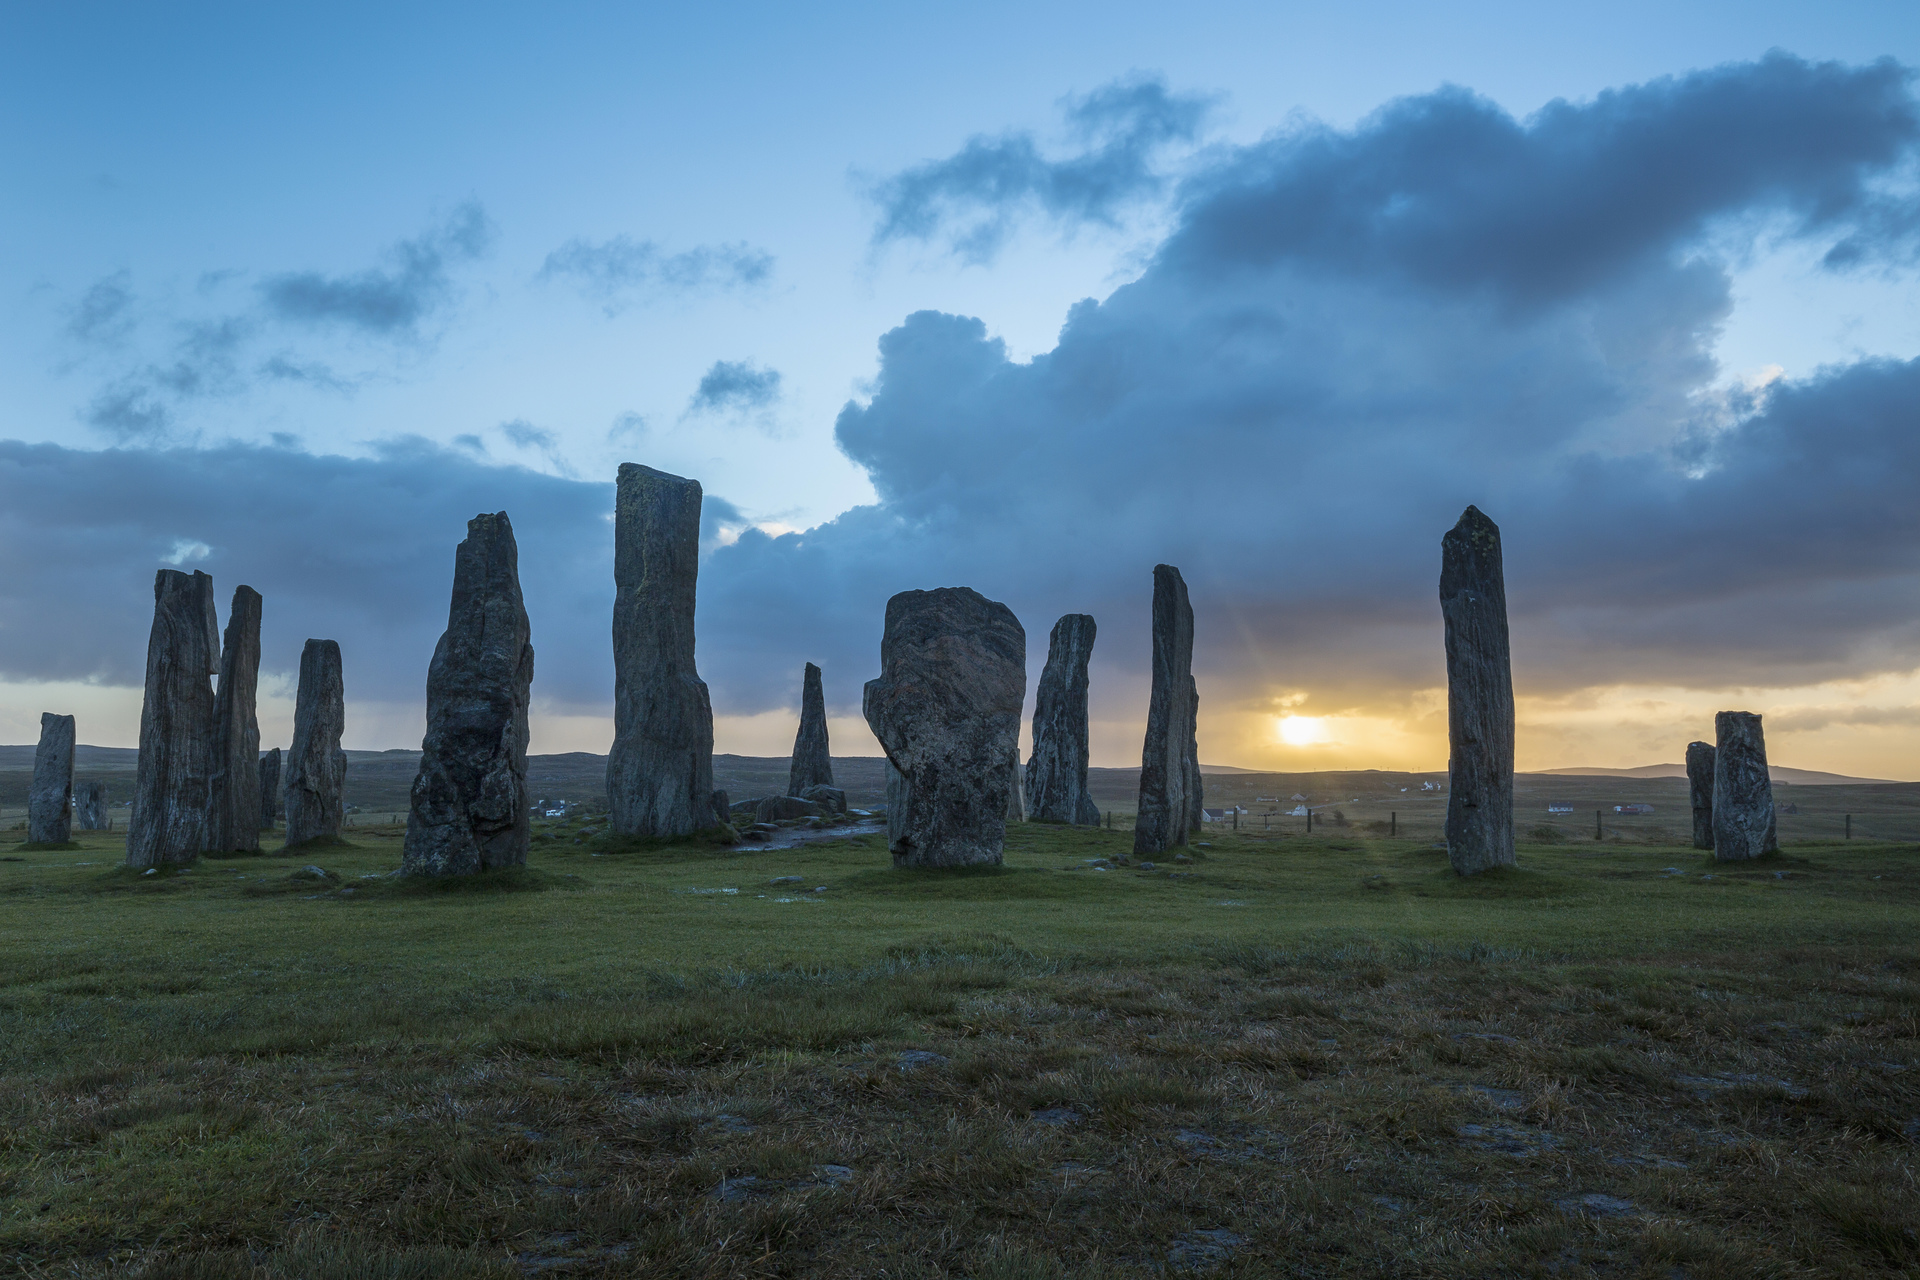 Callanish, Isle of Lewis, äussere Hebriden